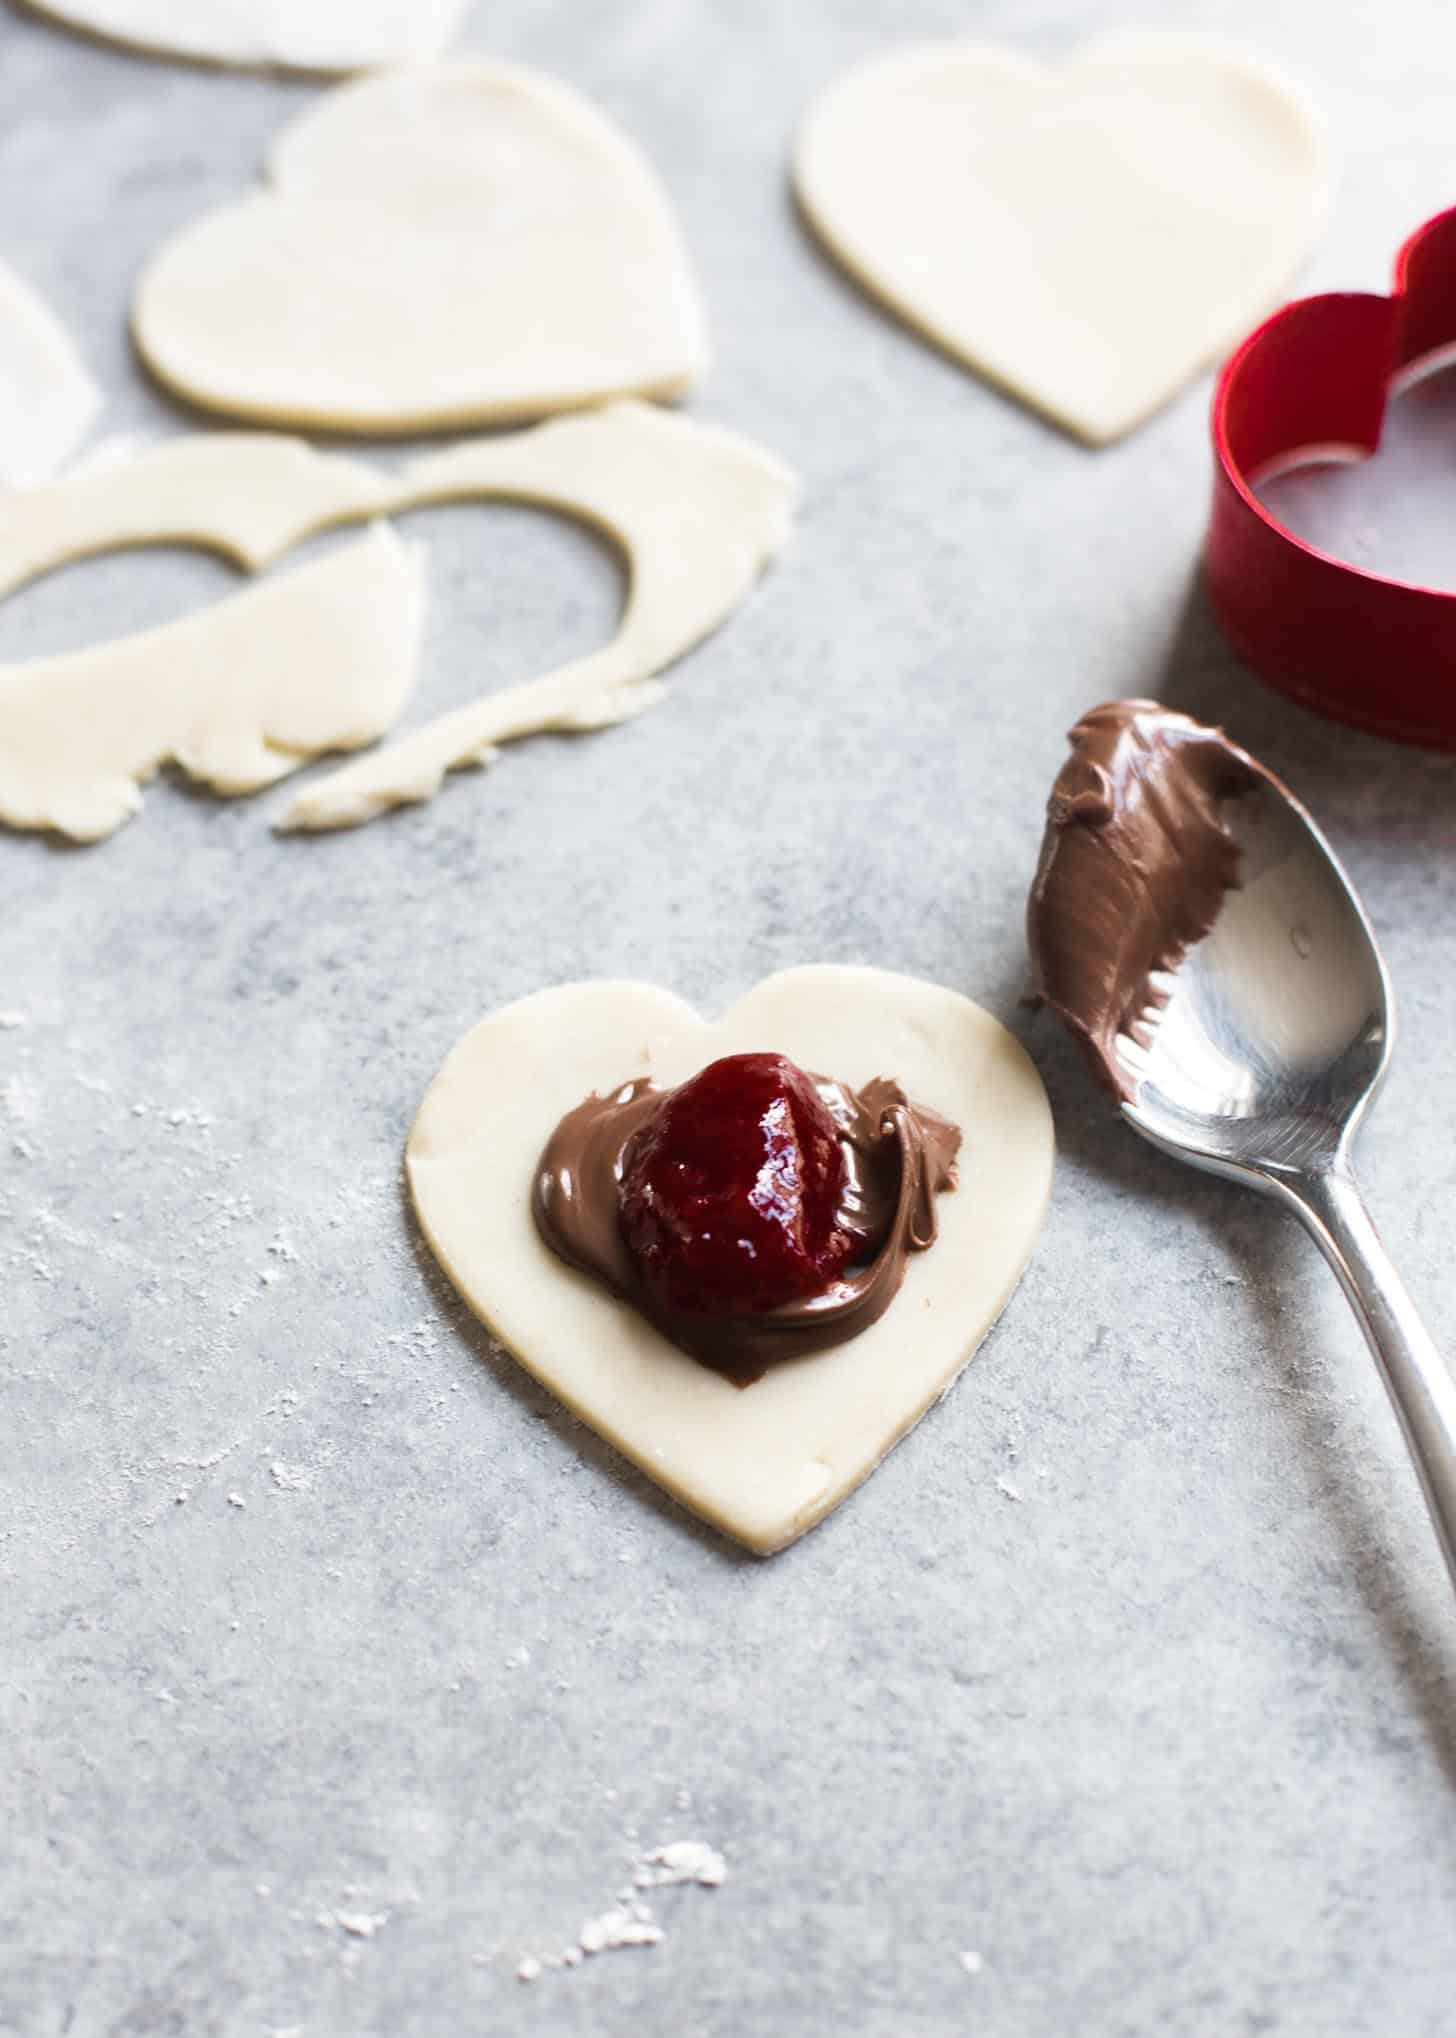 adding strawberry jam and nutella to a heart shaped piece of dough